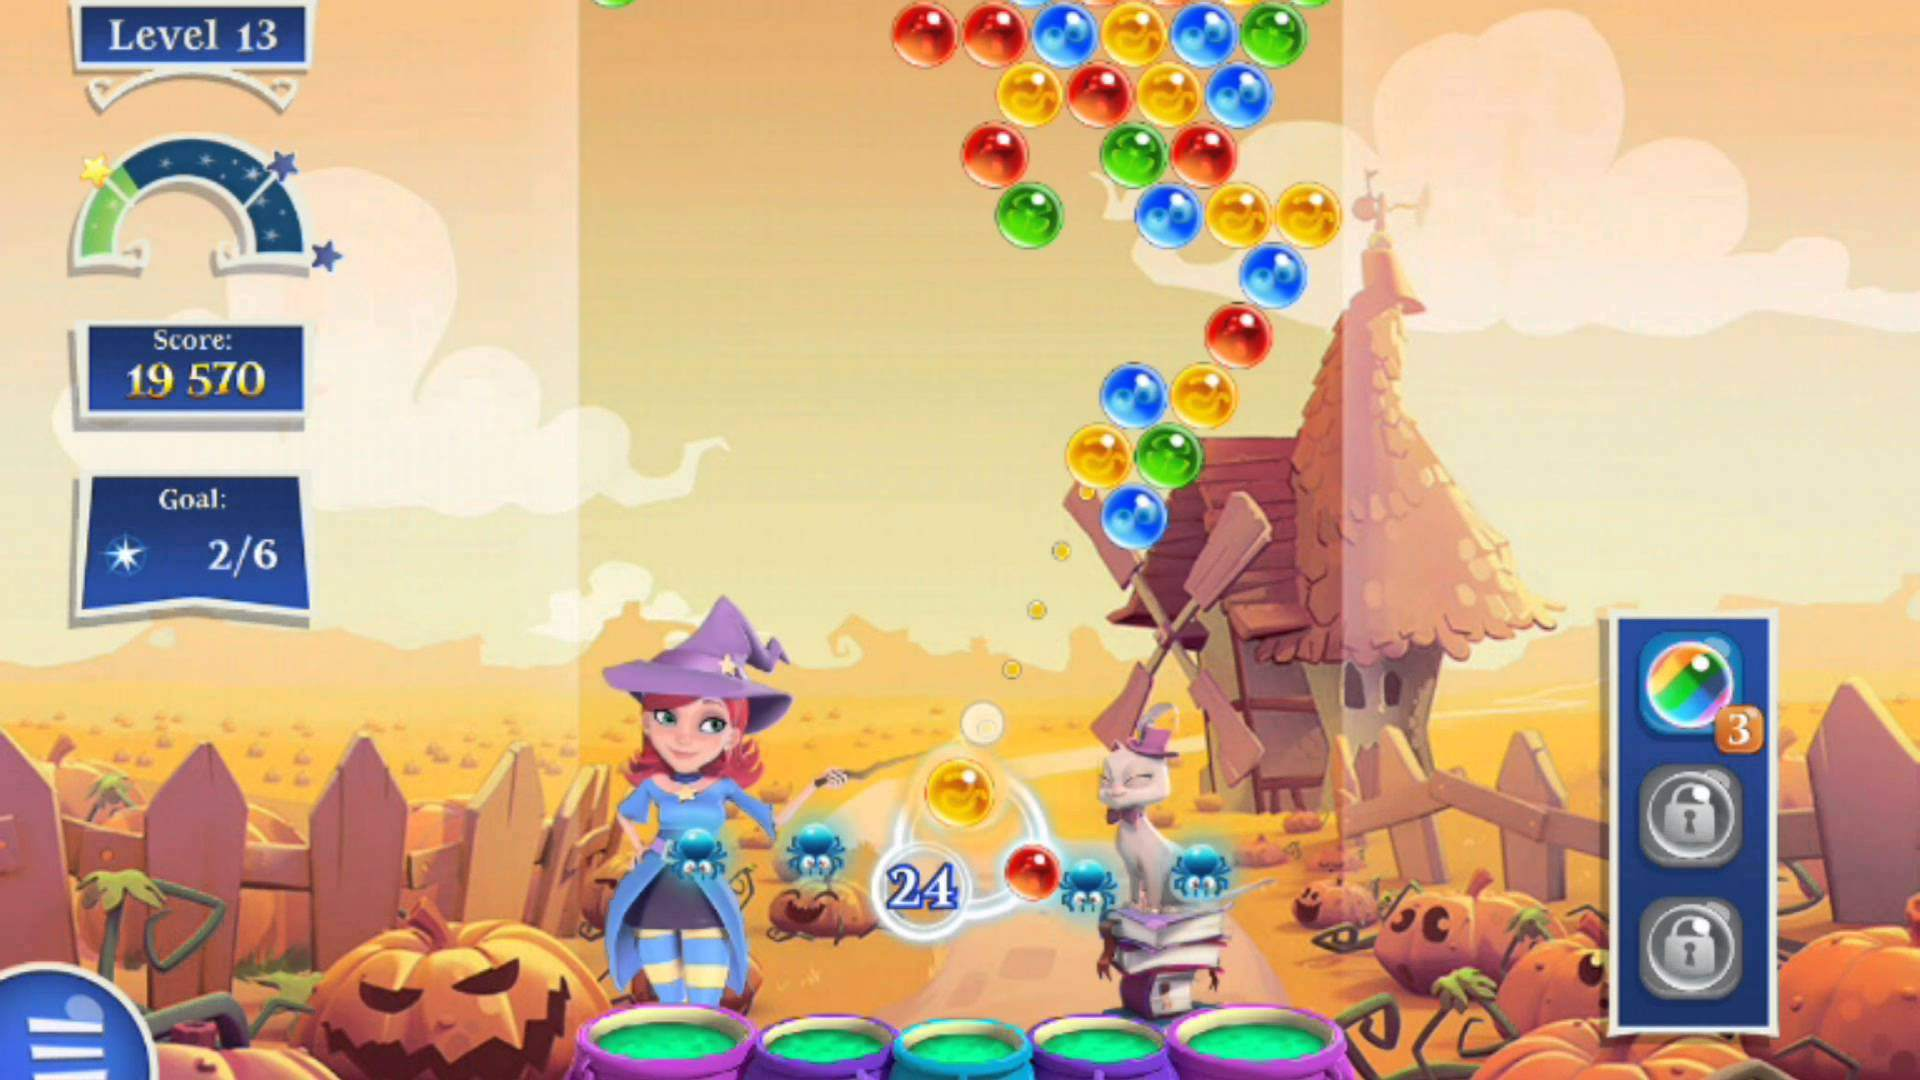 How Get Gold in Bubble Witch 3 Saga